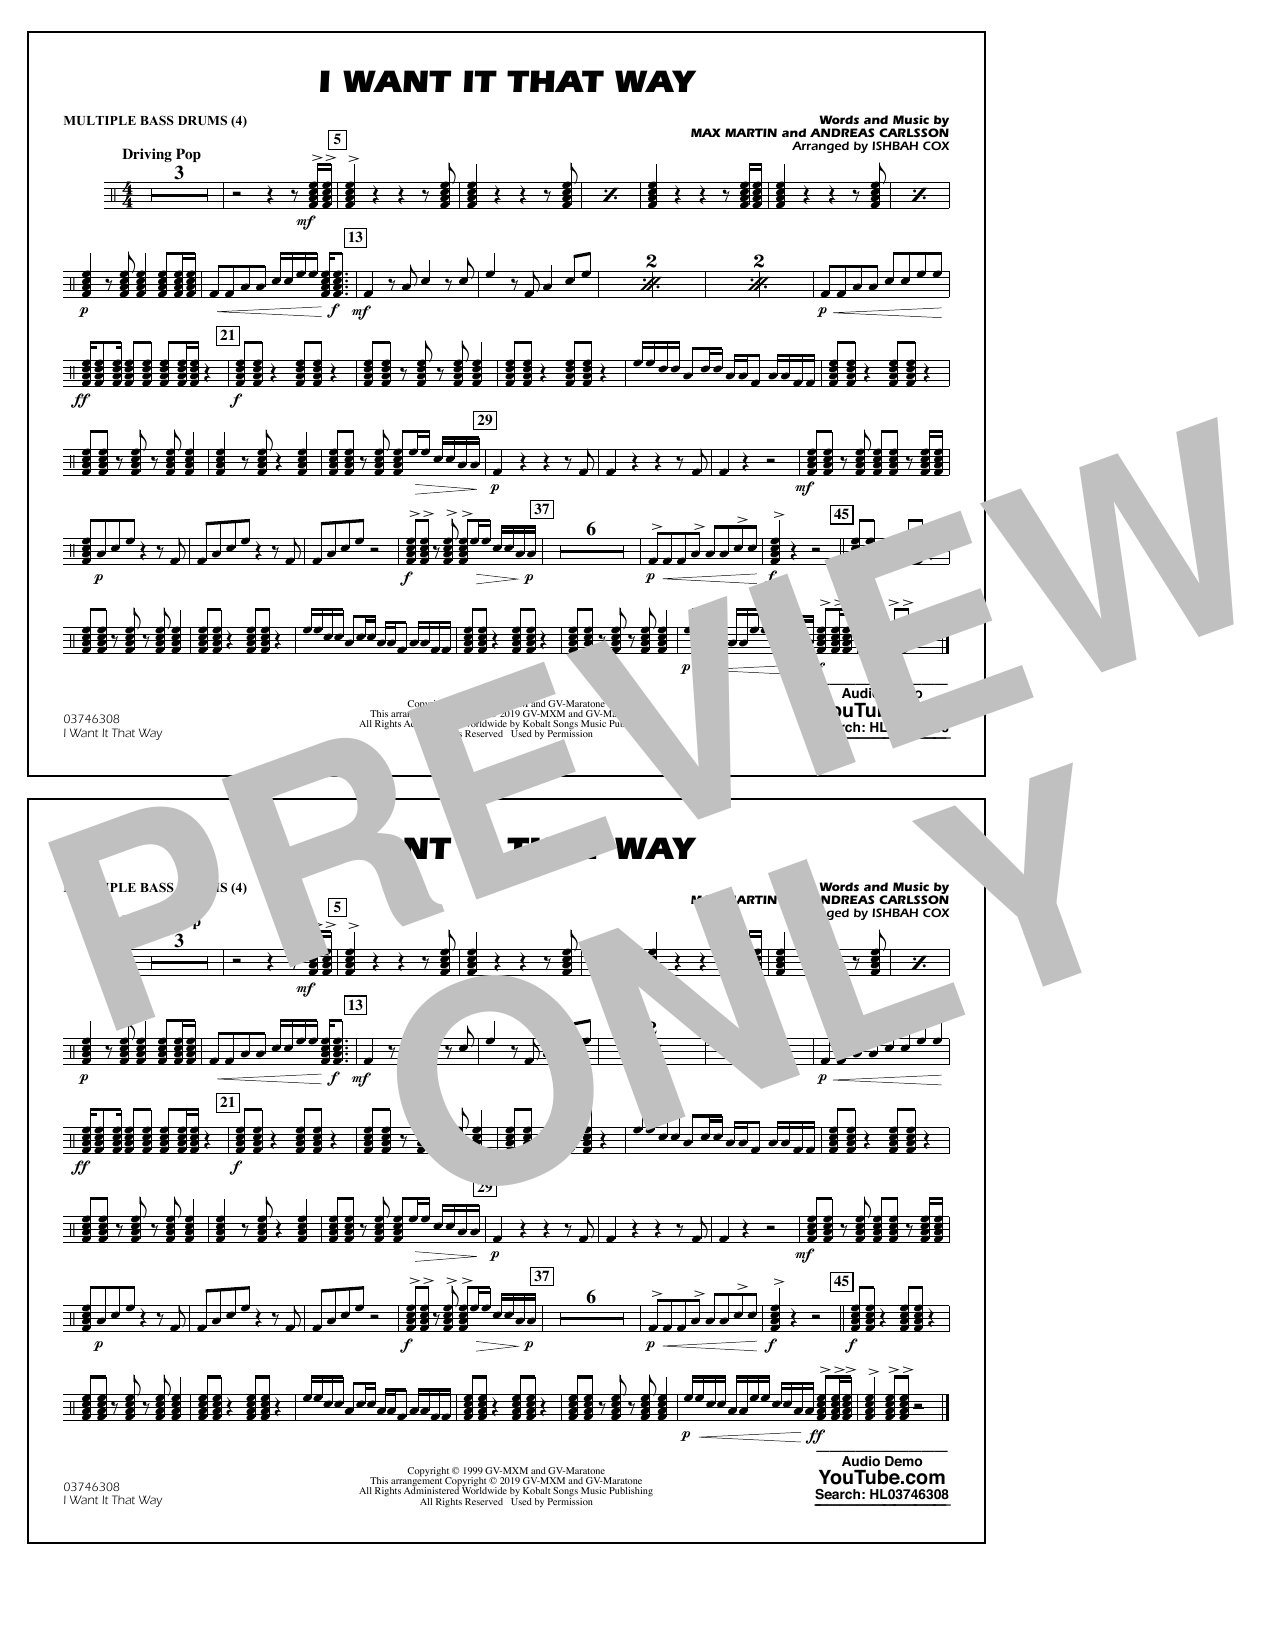 Backstreet Boys I Want It That Way (arr. Ishbah Cox) - Multiple Bass Drums sheet music notes and chords